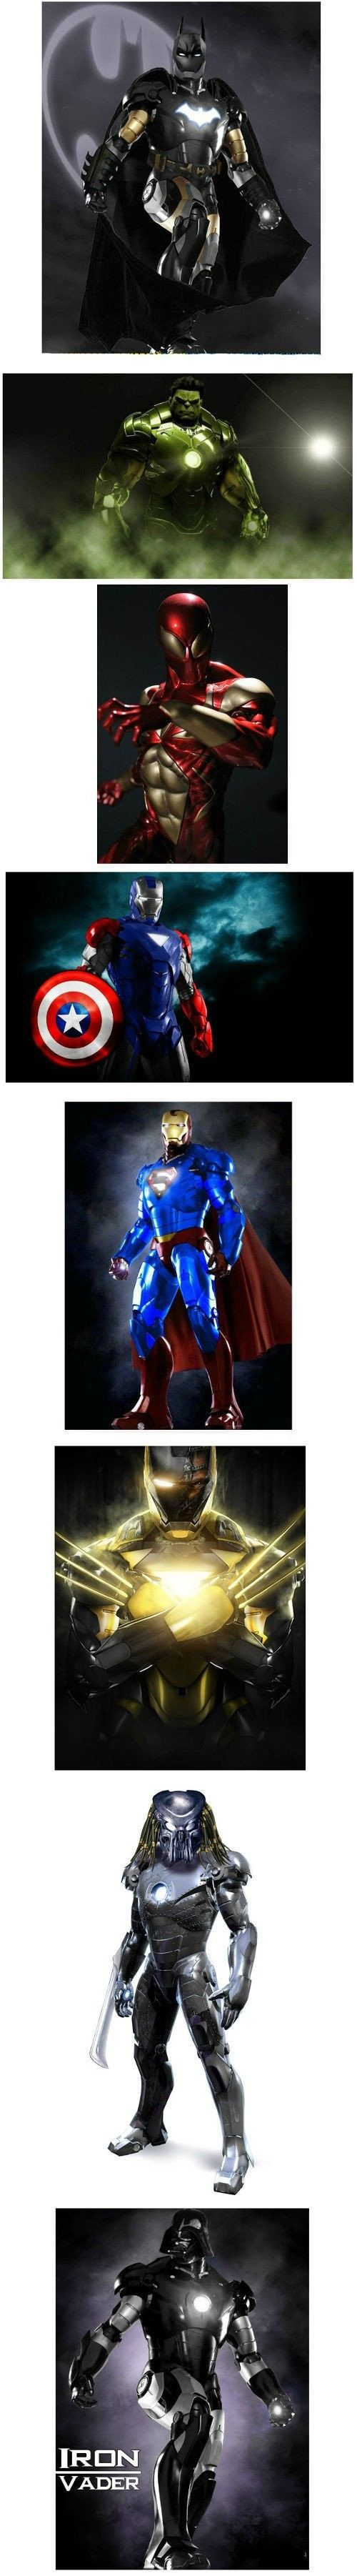 Superheroes in Iron Man suit - Superheroes,Iron…